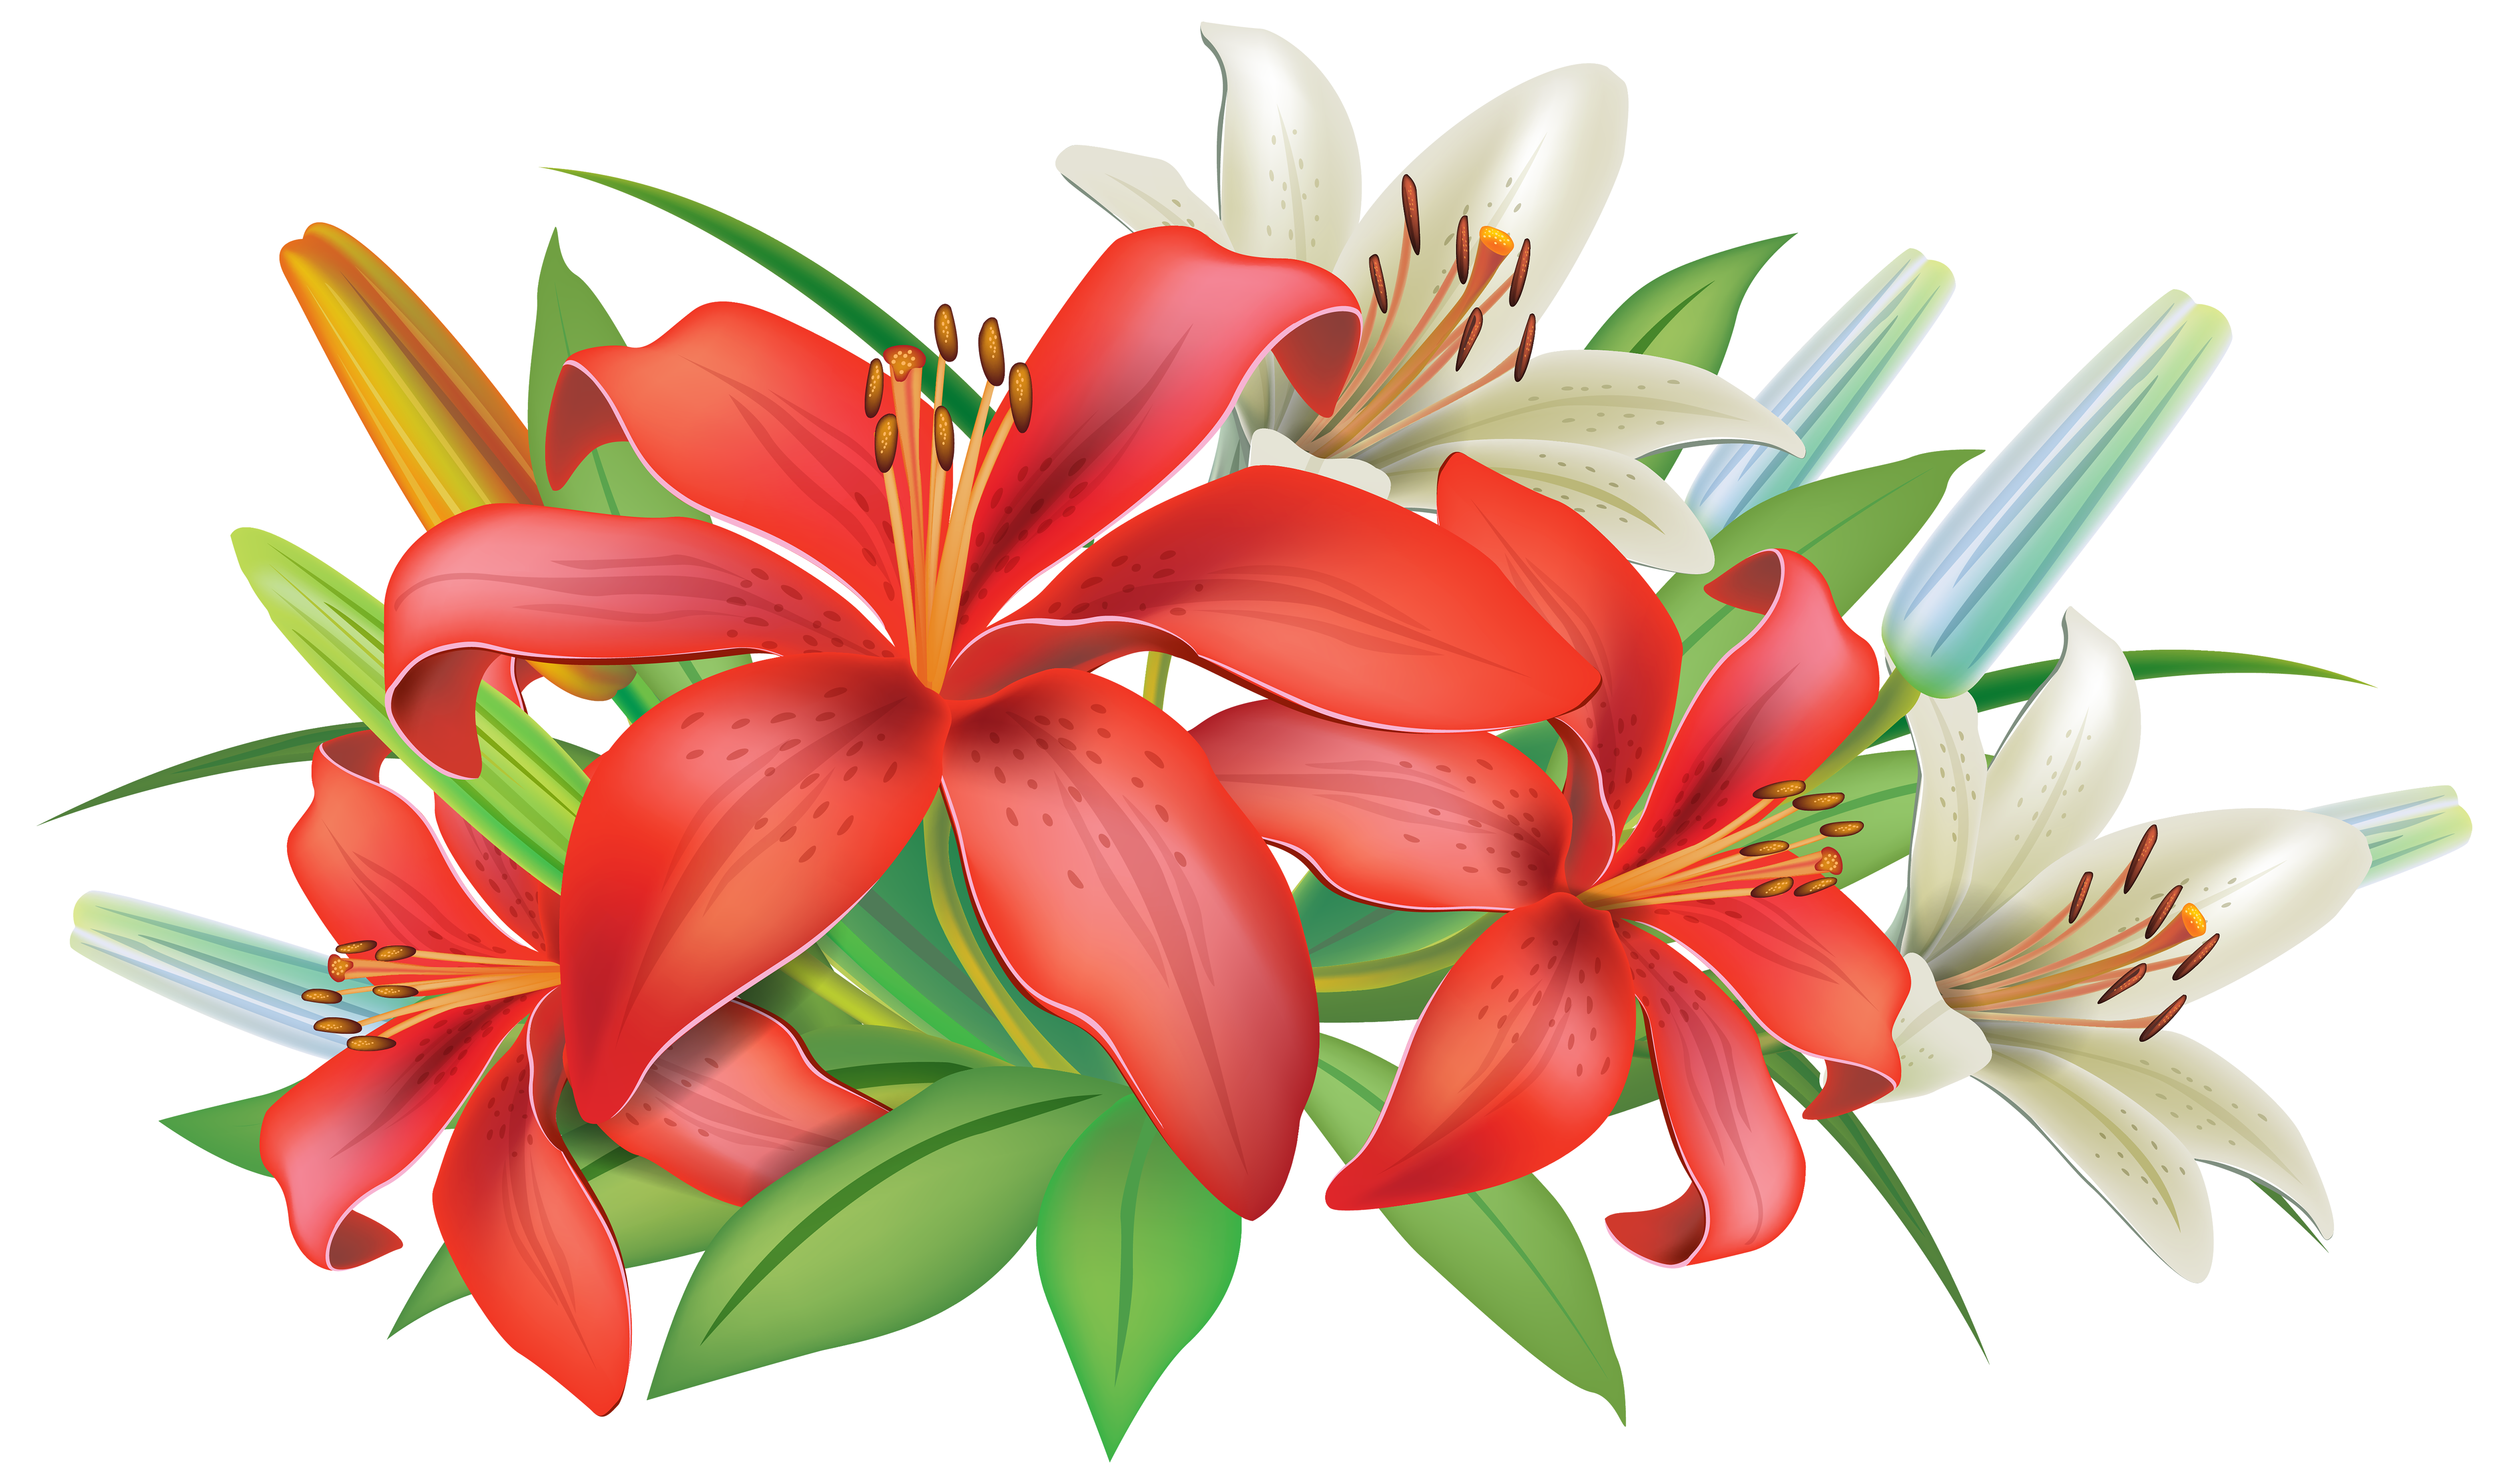 Lily flower border clipart image royalty free library Red Lilies Flowers Decoration PNG Clipart Image | Gallery ... image royalty free library